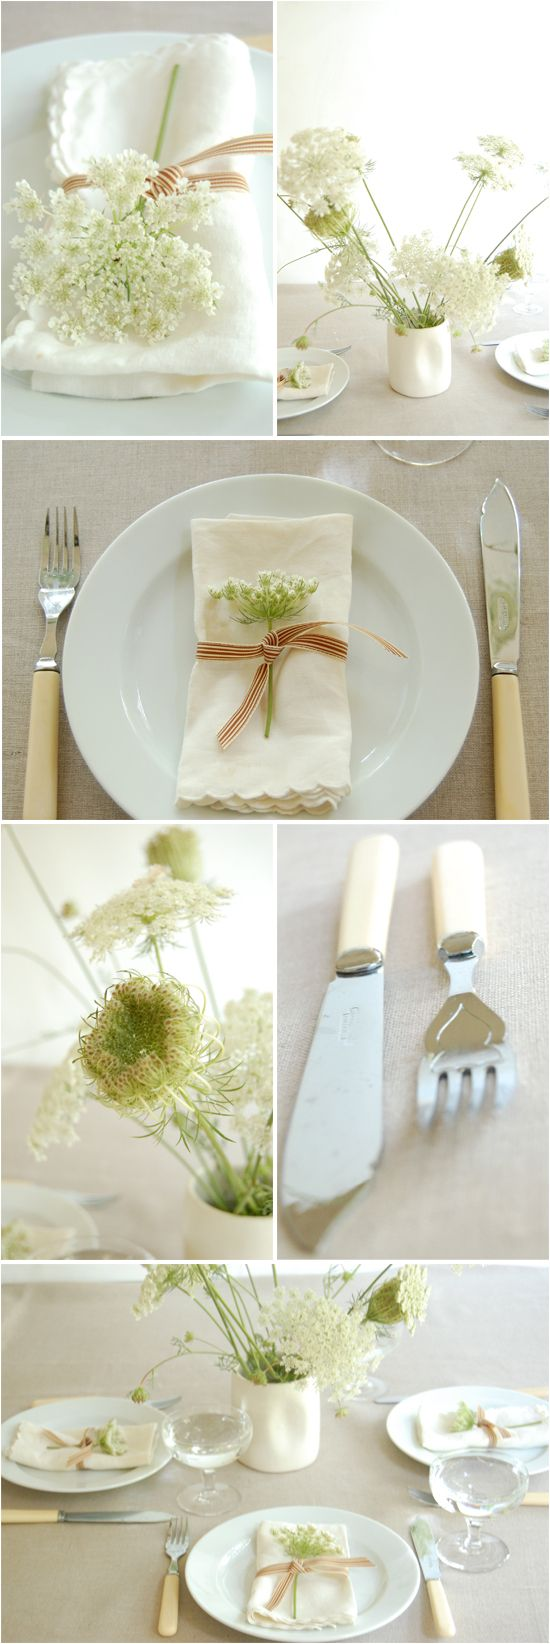 Queen Anne's Lace - I love how pretty this looks.  Maybe for a bridal shower?